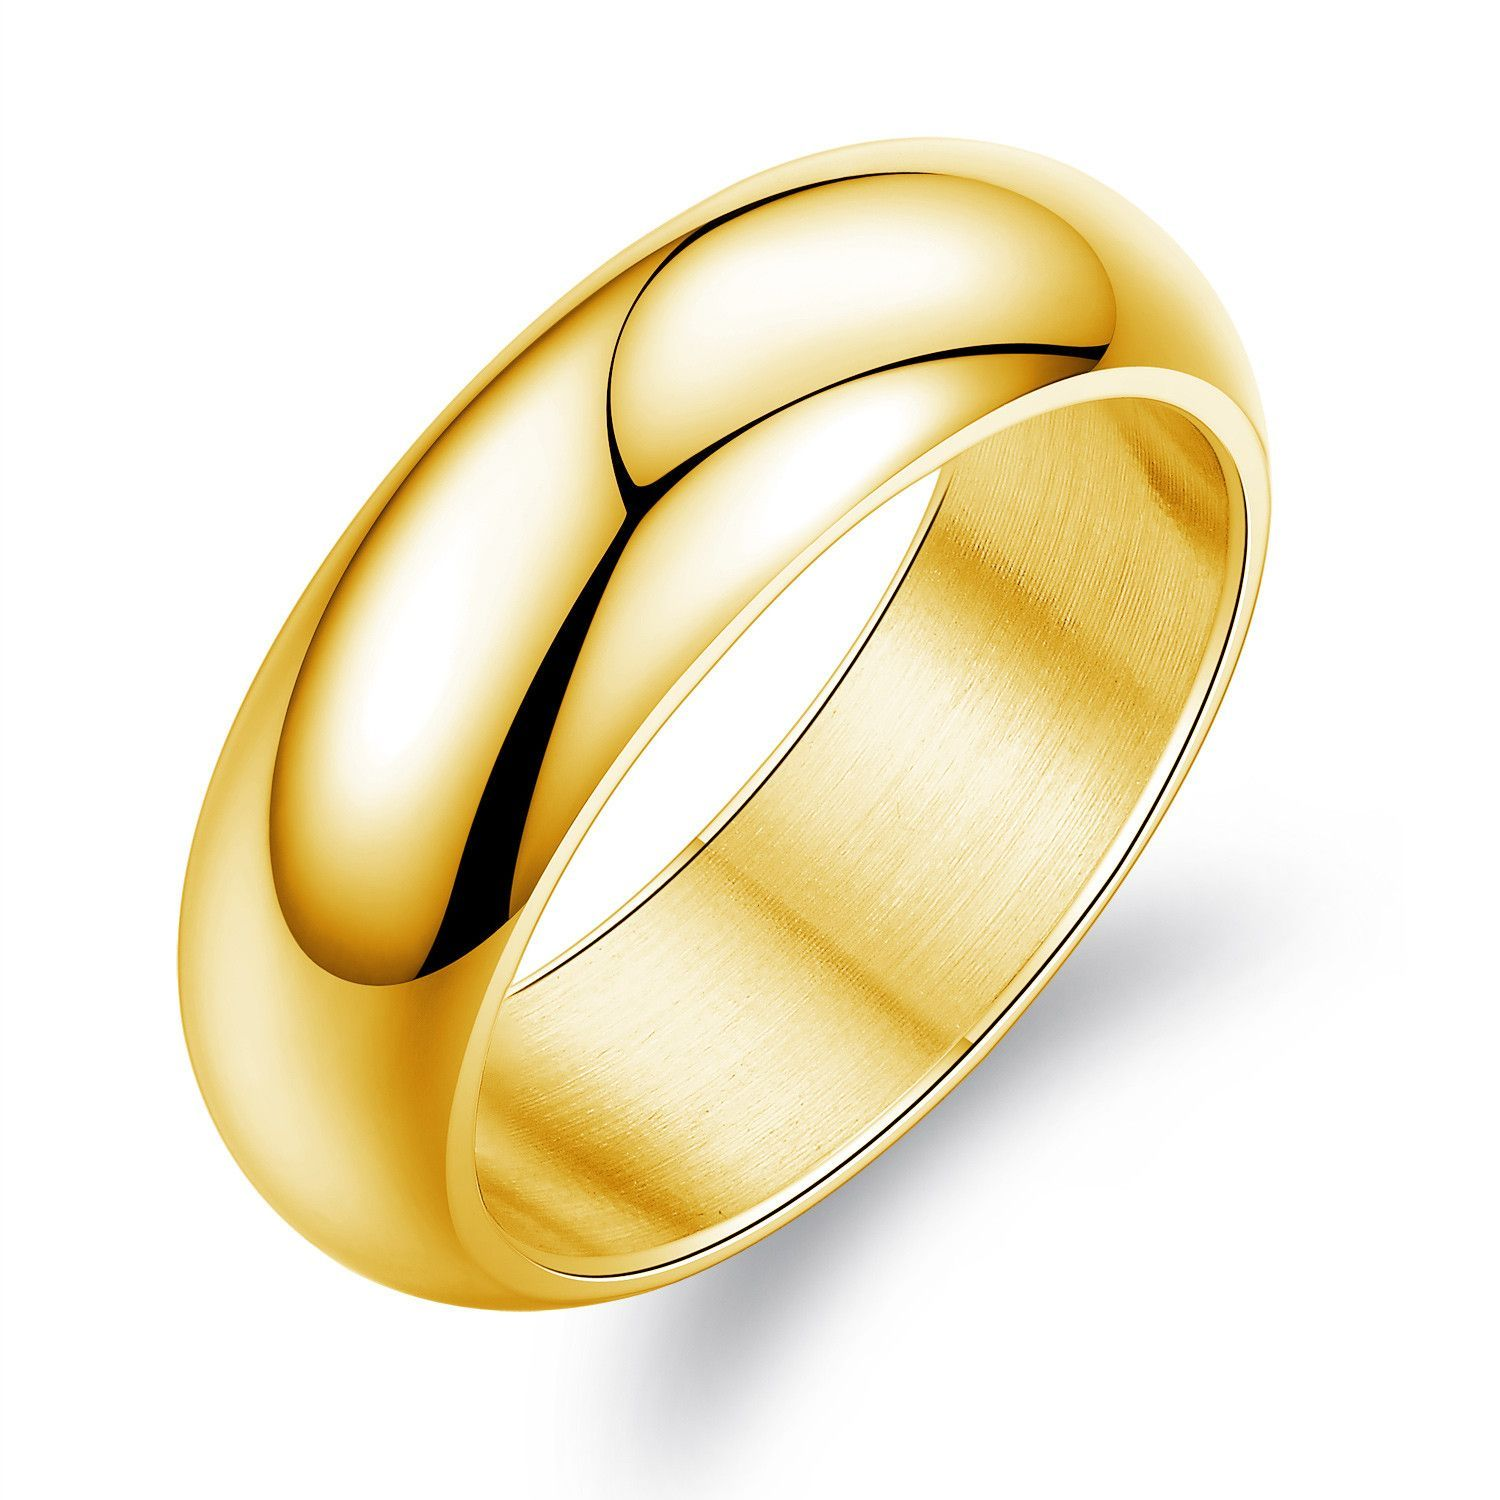 then korea ring korean gold tag page on becoming rings a wife feminist good